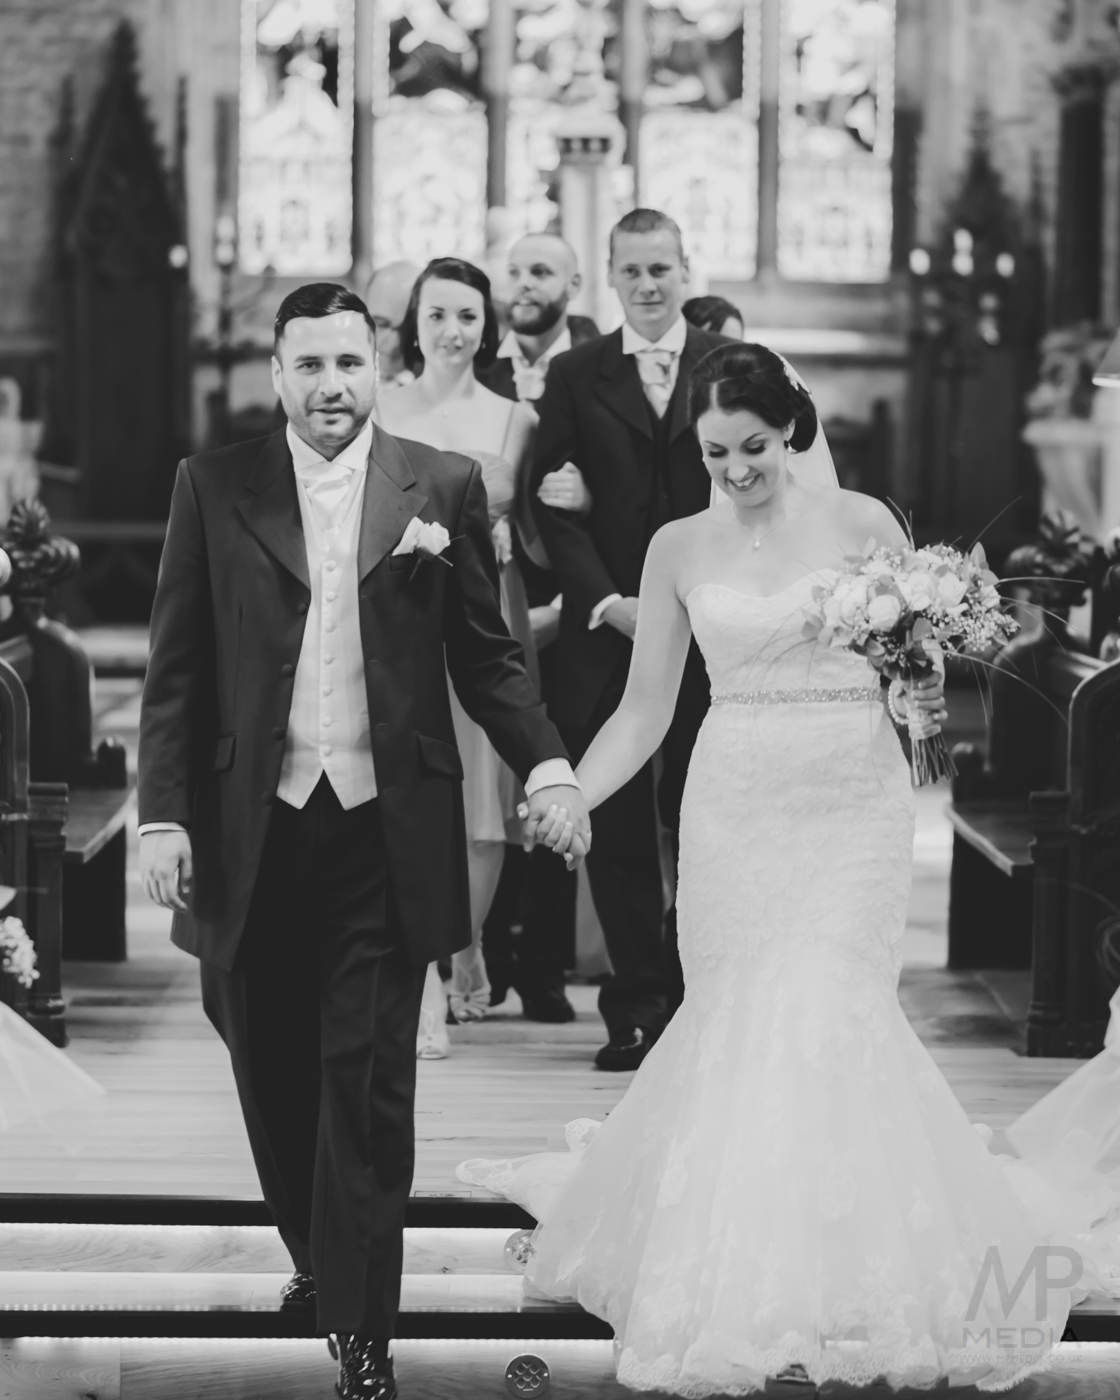 066 - Natalie and Kevals Fine Art Wedding Photography Stoke Rochford Hall by Pamela and Mark Pugh Team MP - www.mpmedia.co.uk - Do NOT remove the watermark or edit this image without consent -883.JPG